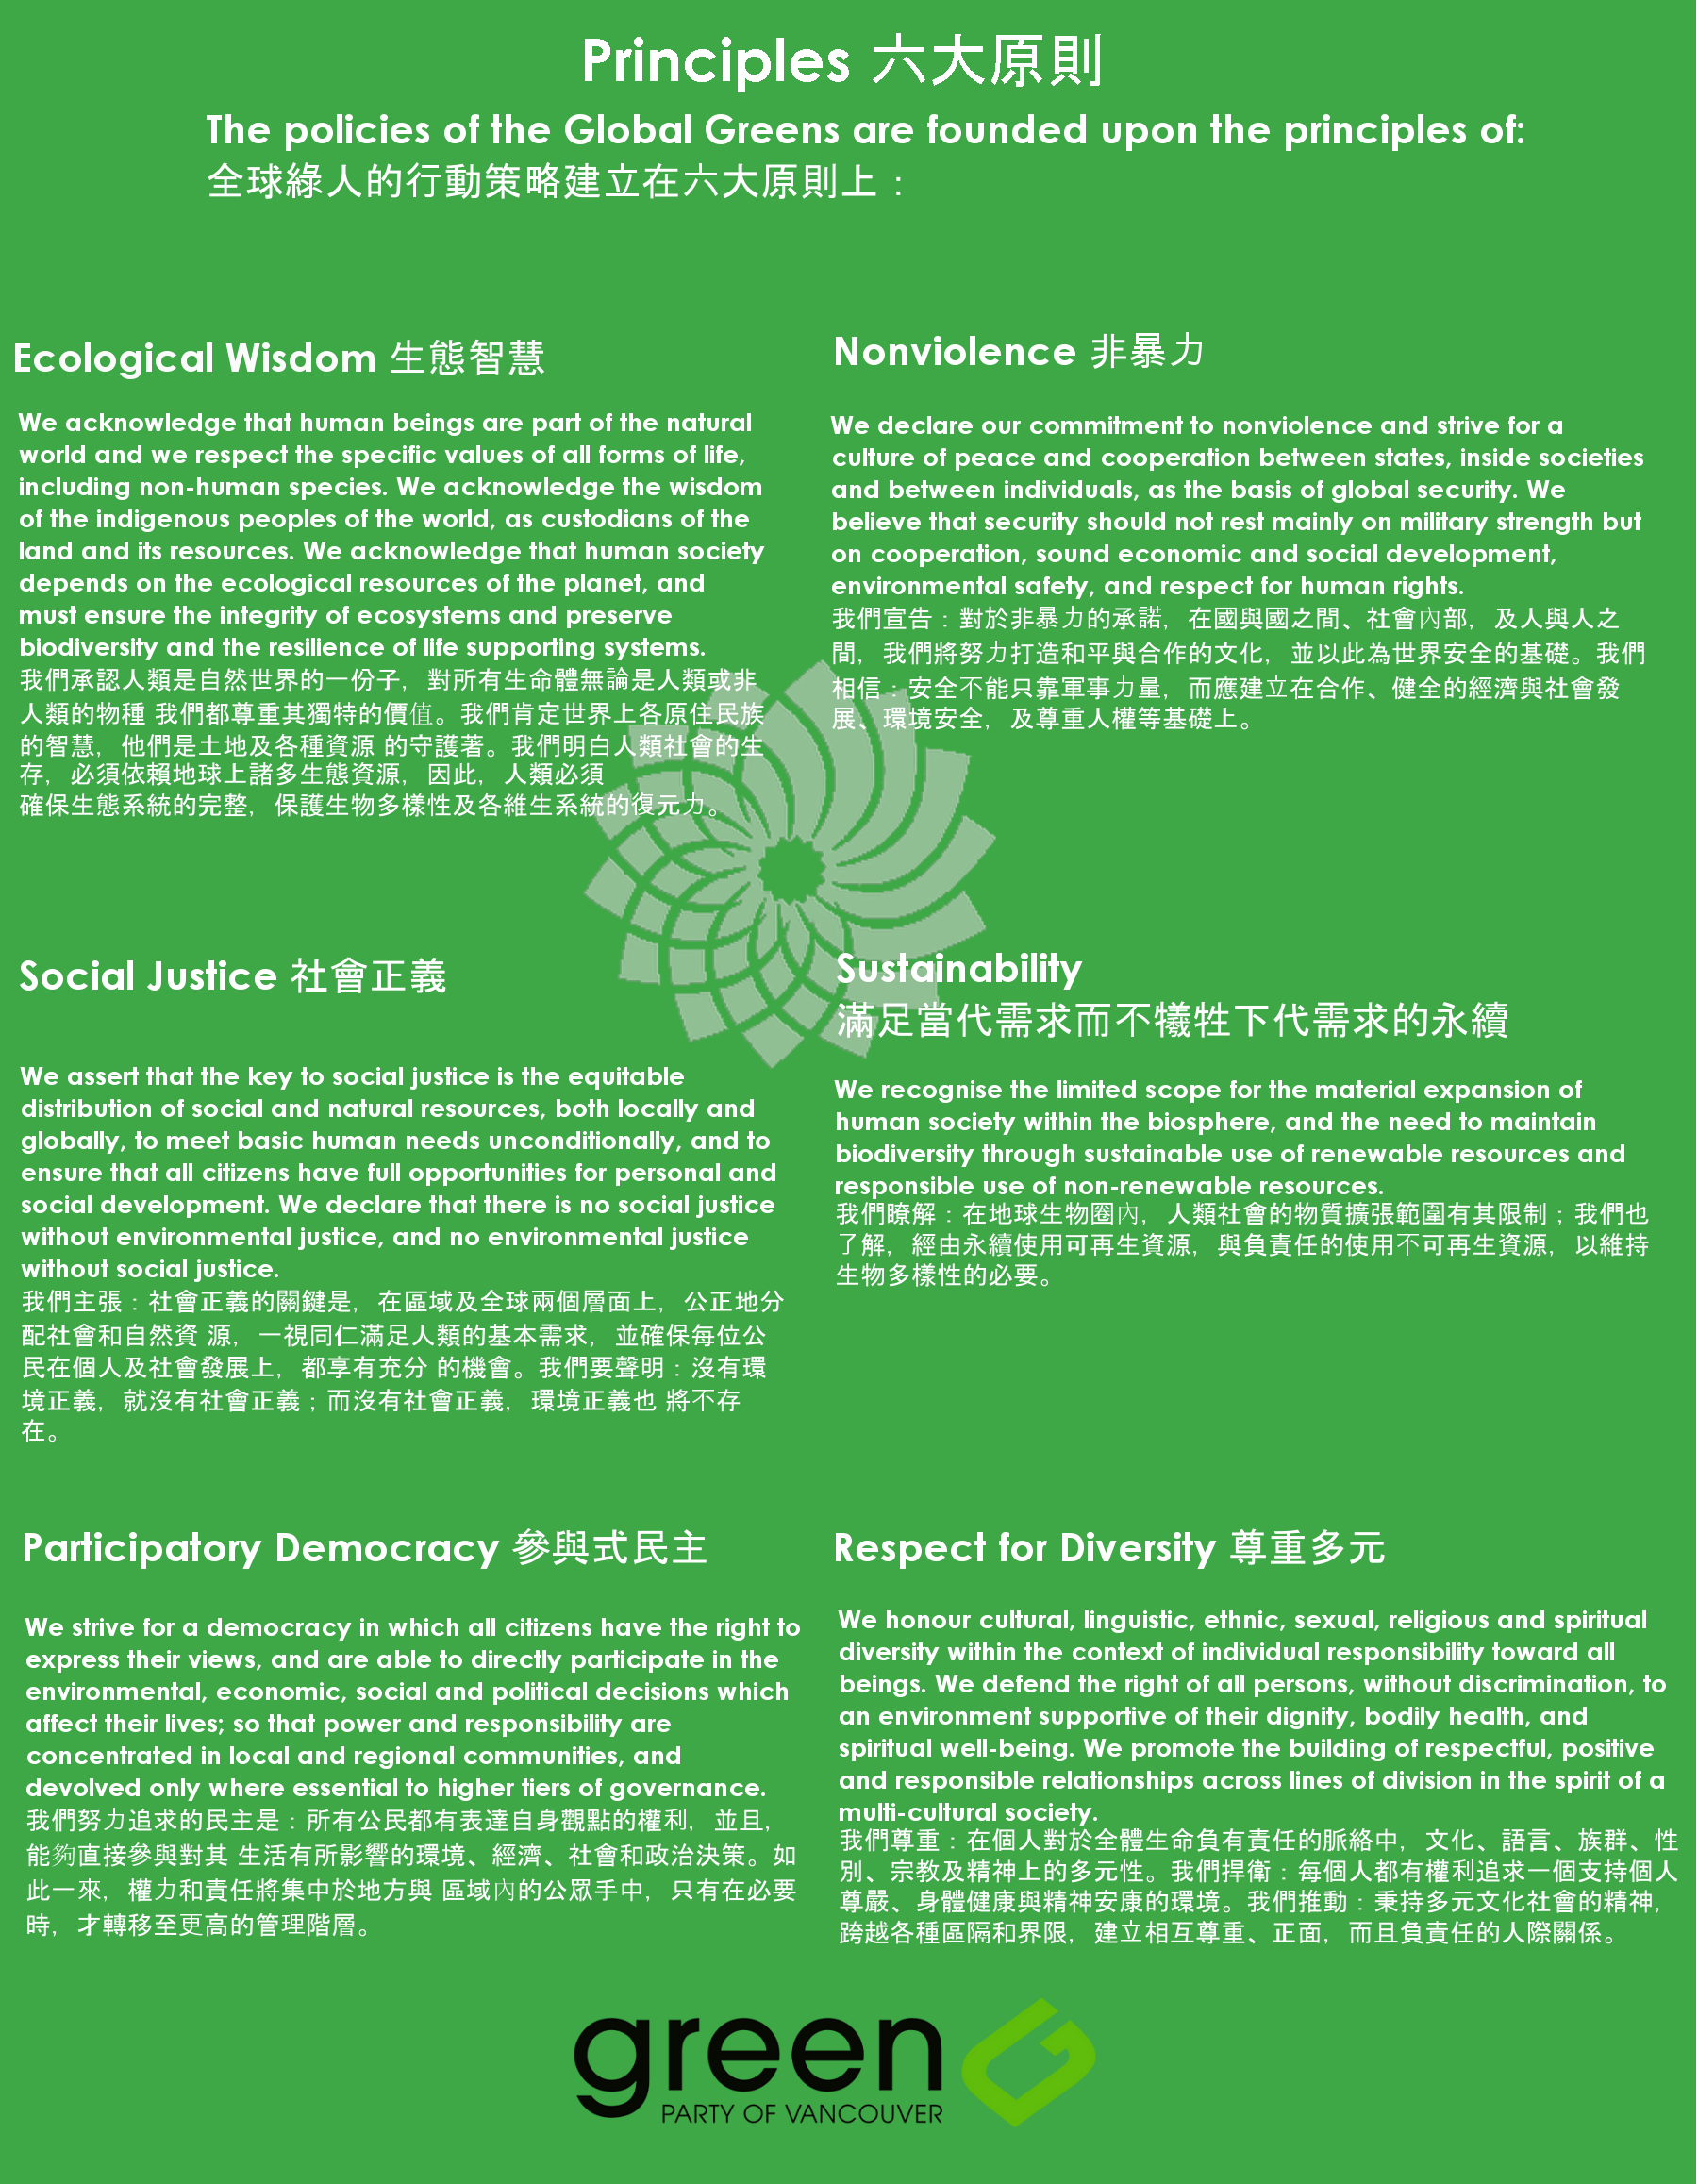 Green_Values_English_Chinese.png